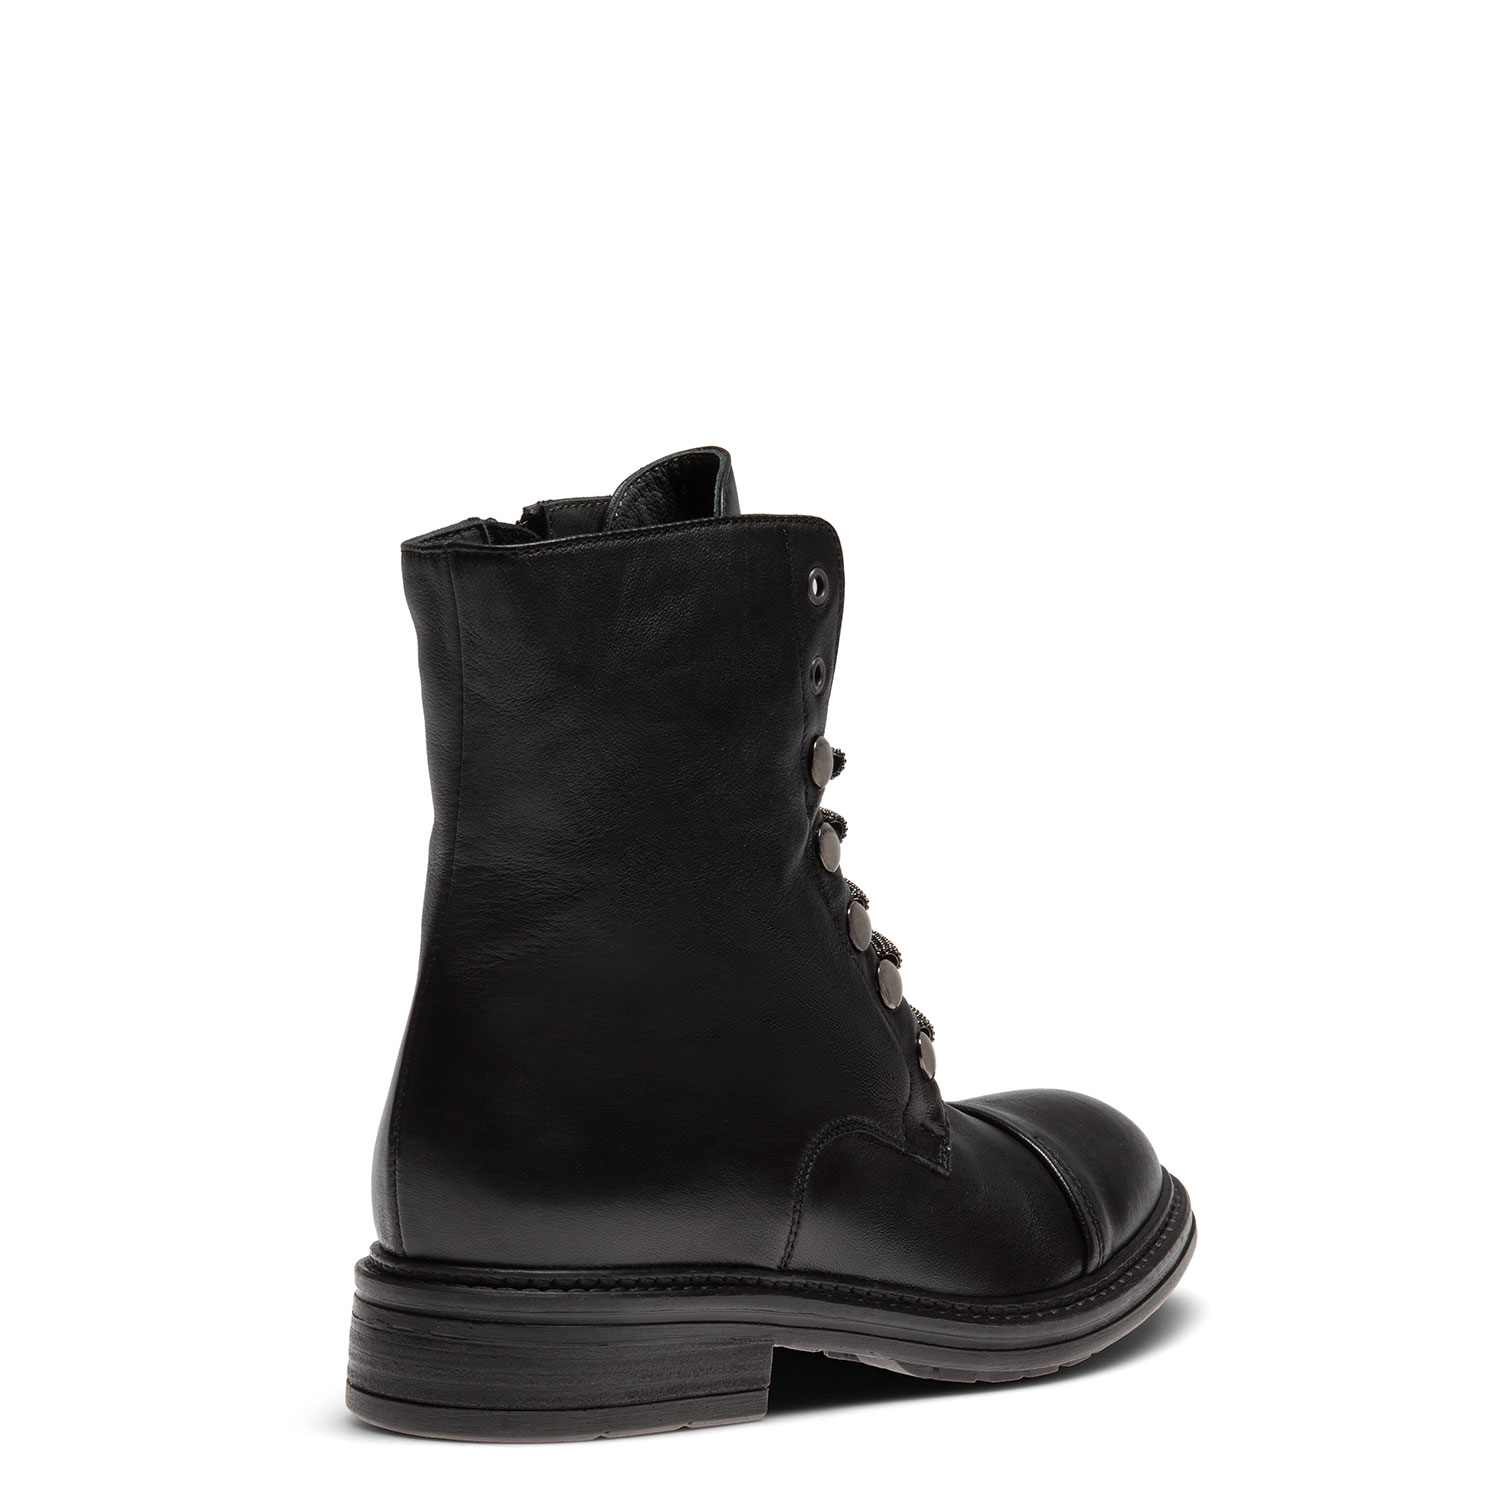 Women's ankle boots PAZOLINI TO-X1623-1